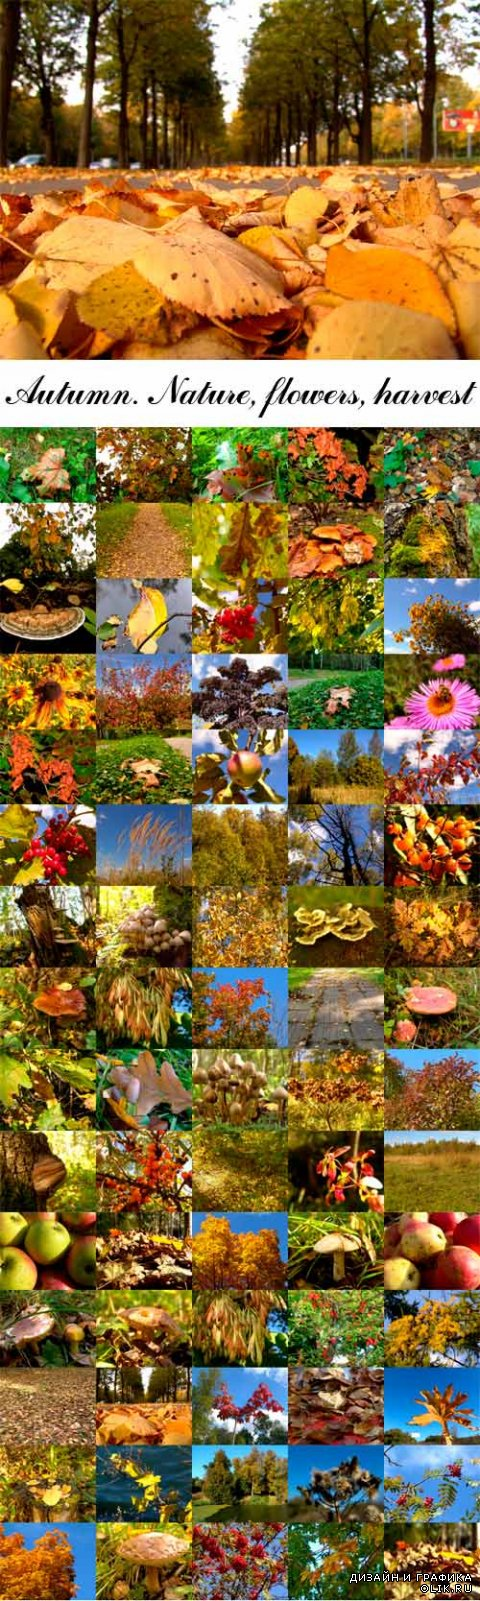 Autumn. Nature, flowers, harvest